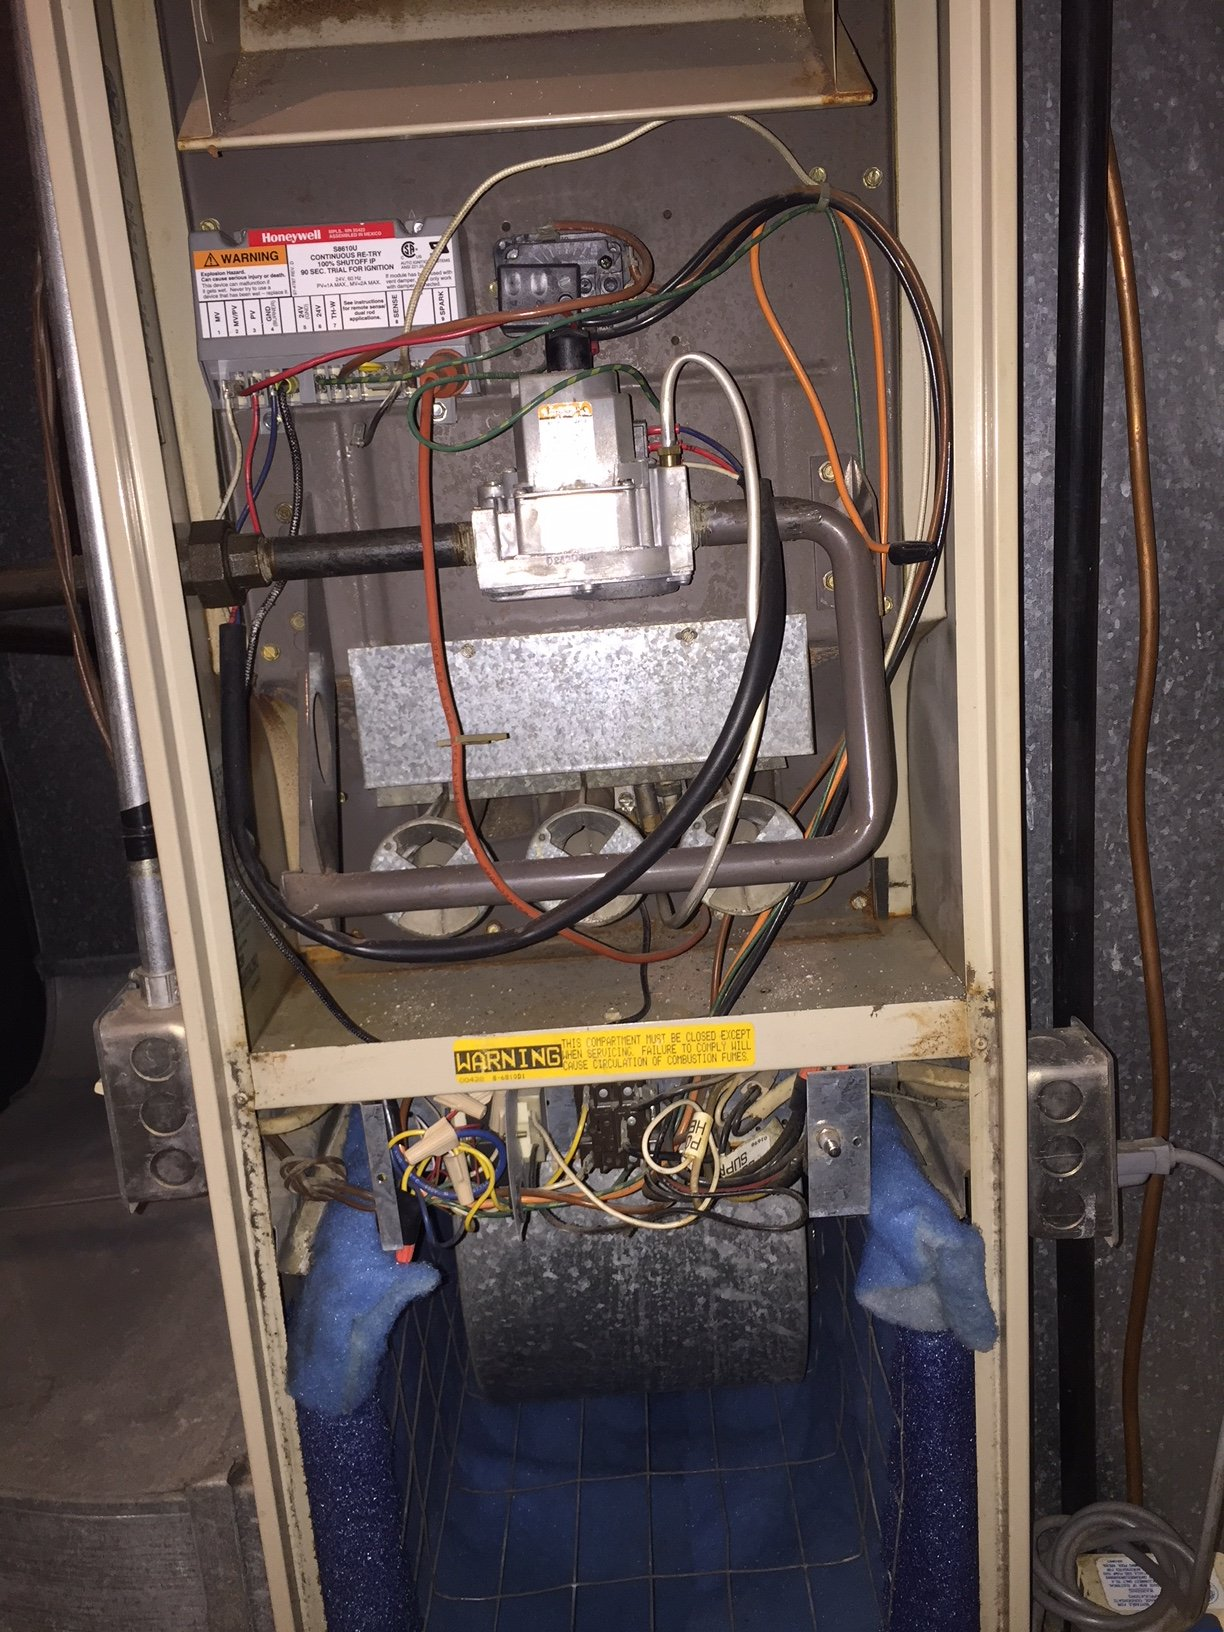 Lennox Gas Furnace Dead  U2014 Heating Help  The Wall